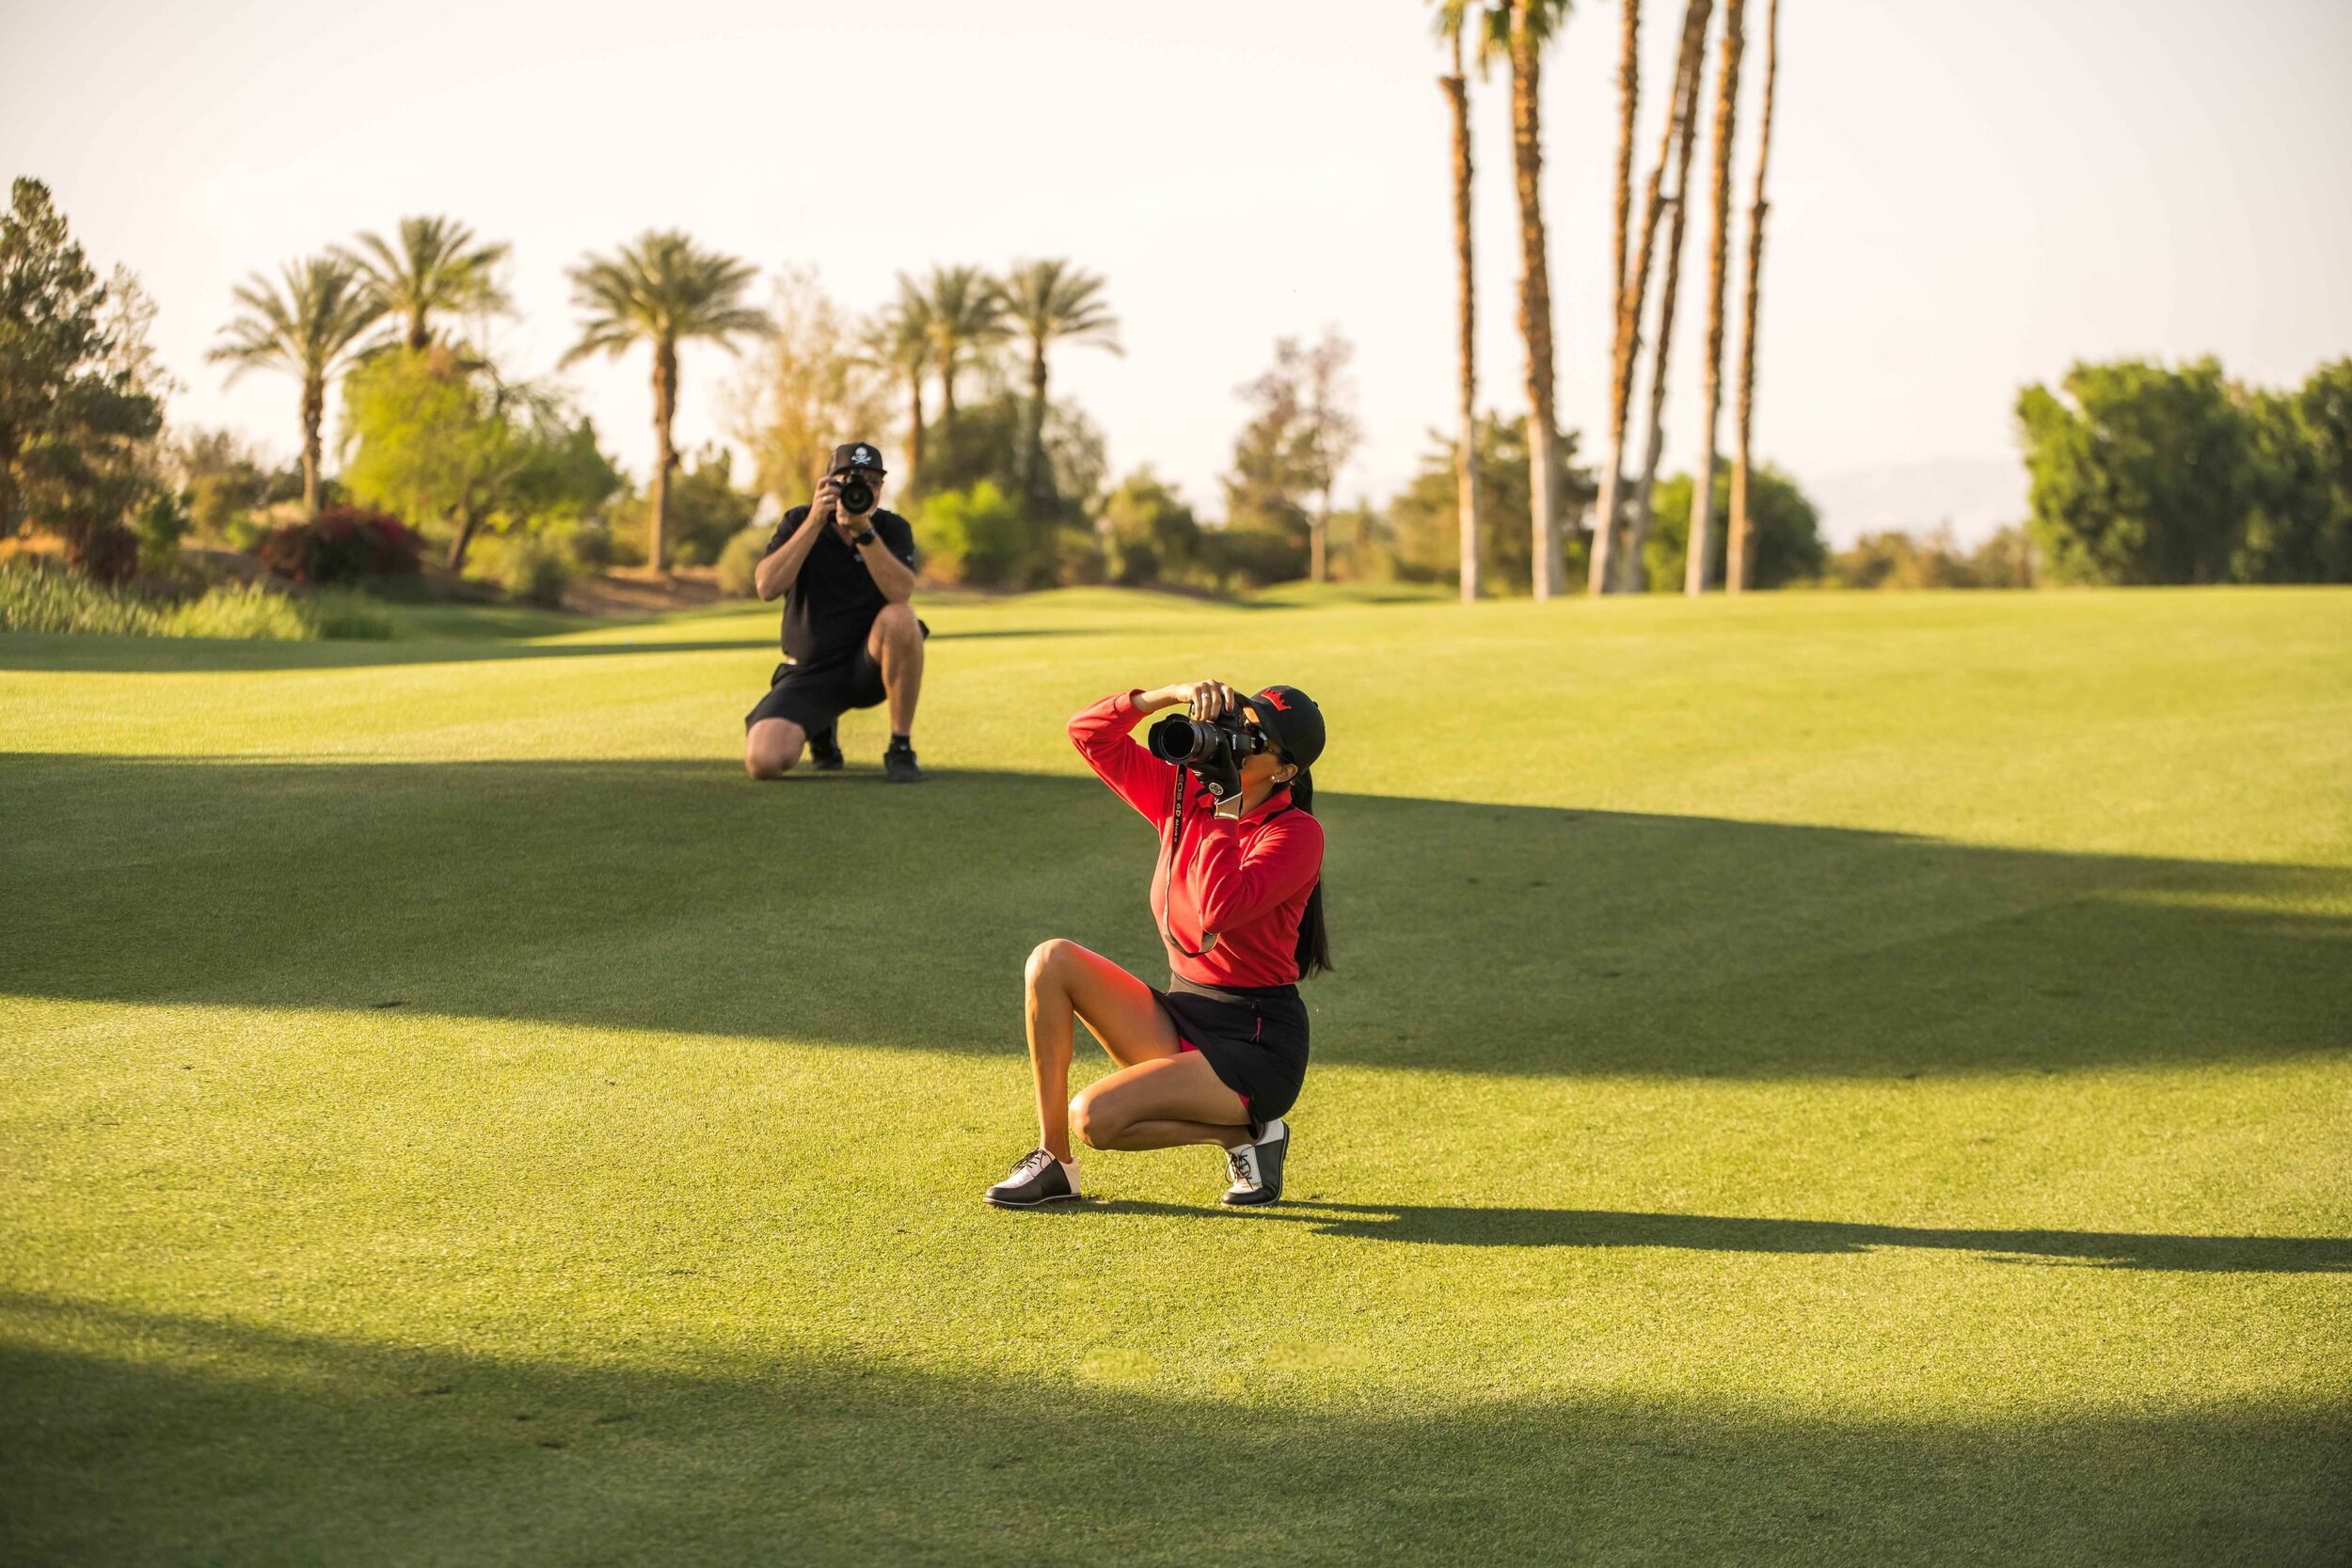 The fairways of Indian Wells are littered with  Trevor  and  Alejandra